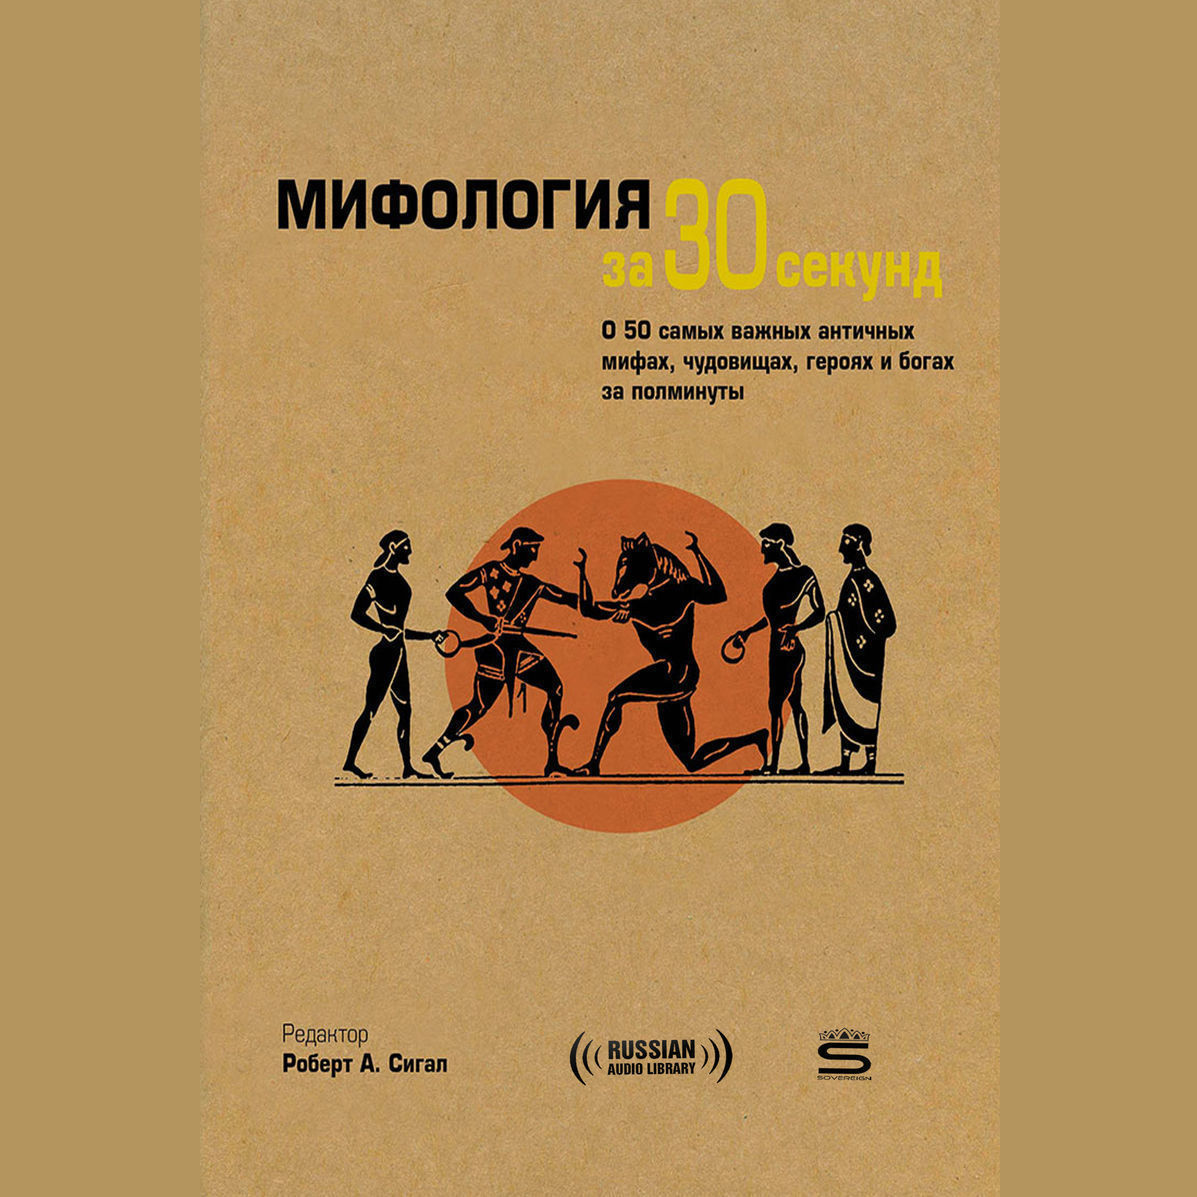 Printable Мифология за 30 секунд: The 50 Most Important Greek and Roman Myths, Monsters, Heroes and Gods, Each Explained in Half a Minute [Russian Edition] Audiobook Cover Art